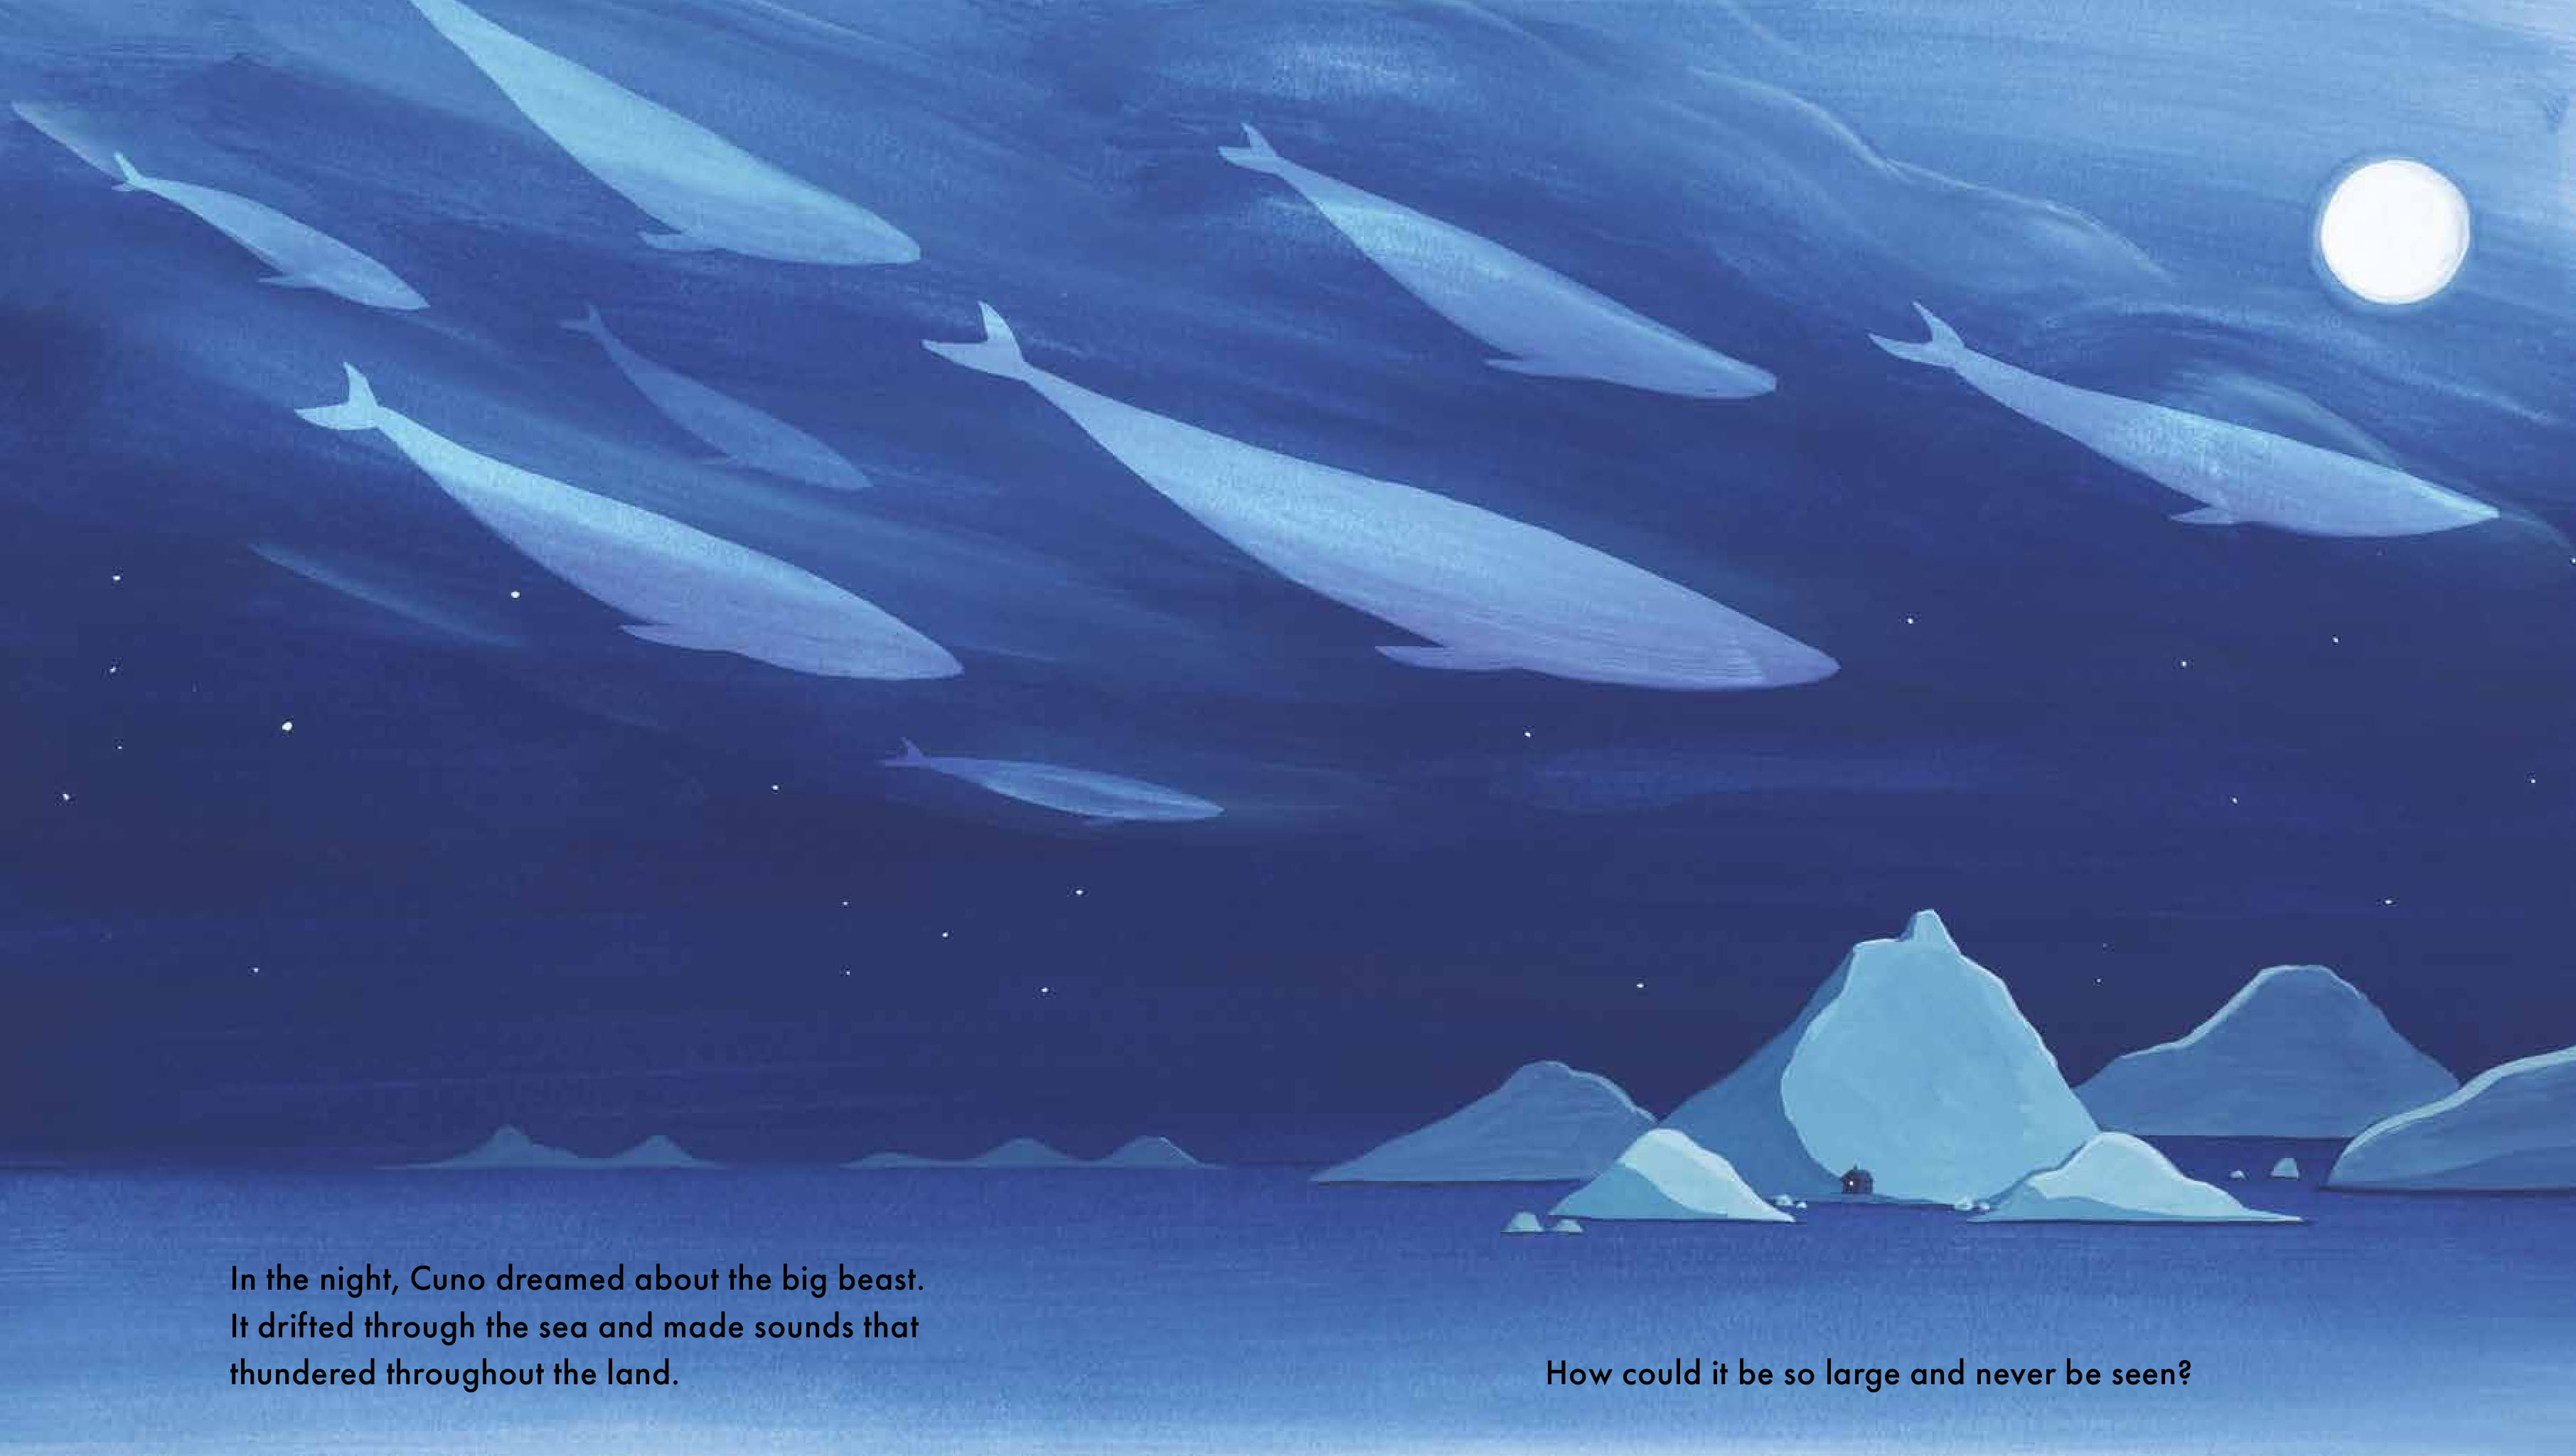 By Daniel Frost from The Children and the Whale copyright Gestalten 2018